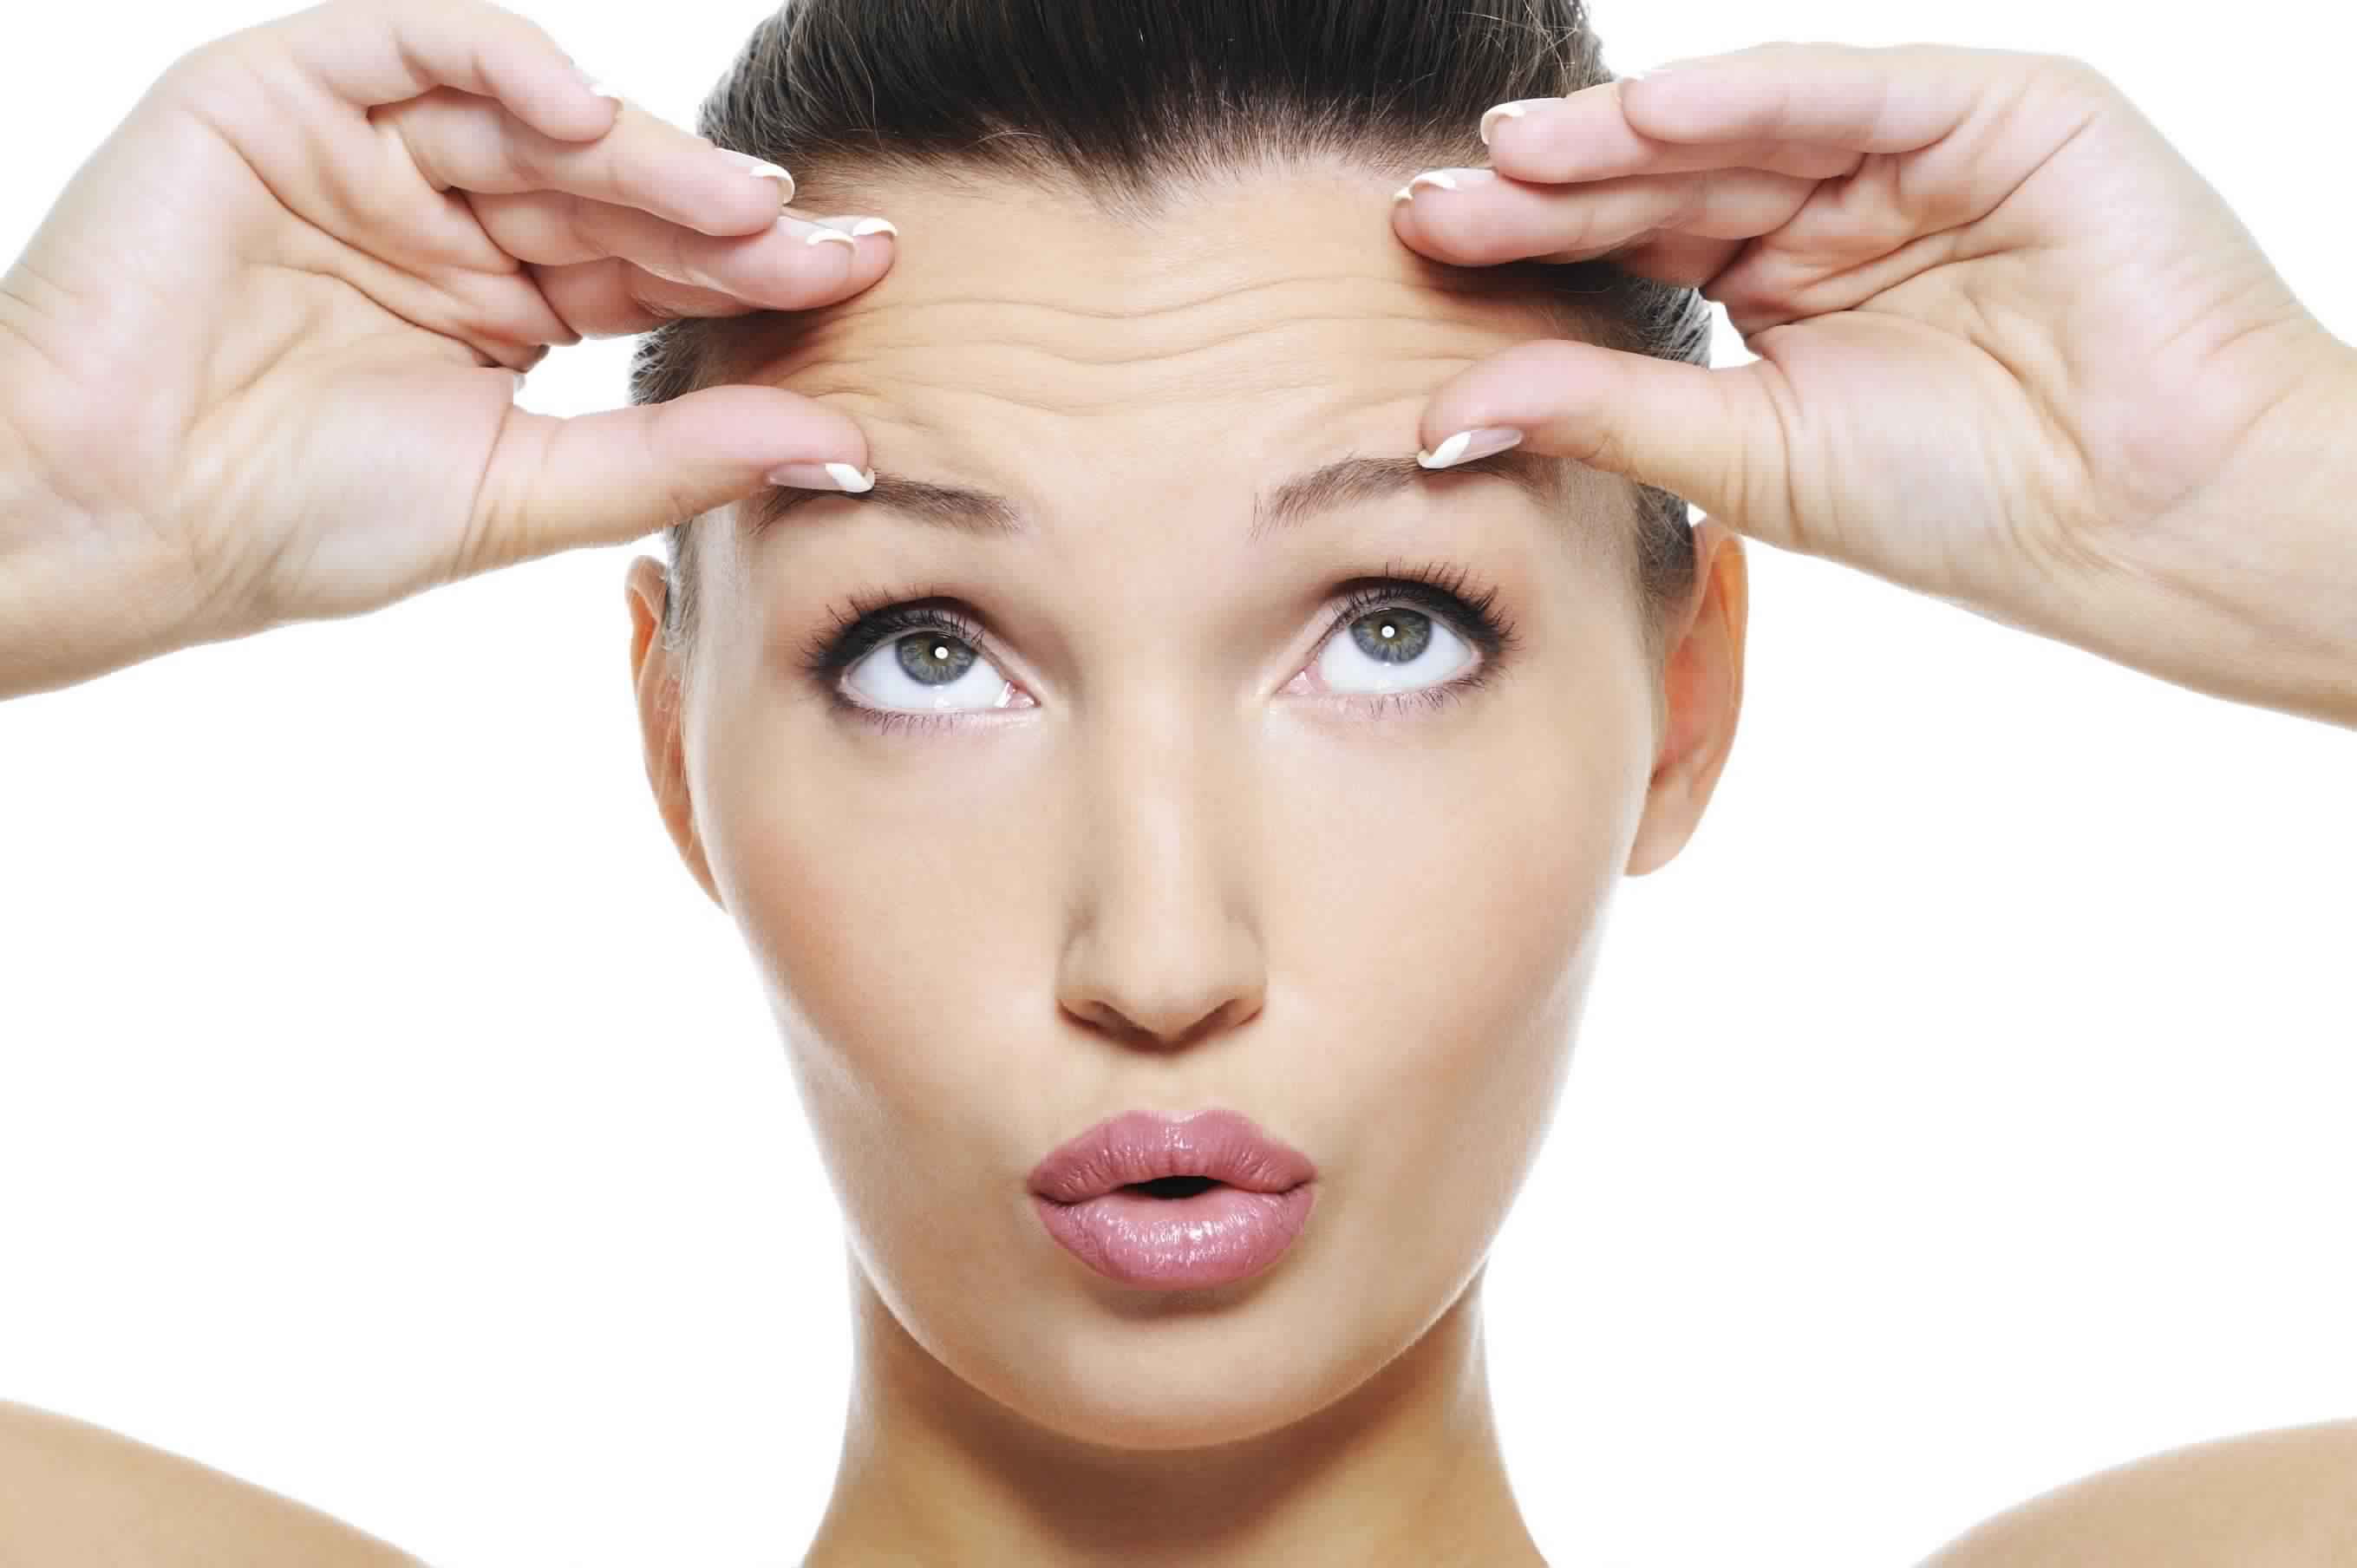 Best Quality Cost Of Botox Treatment In Delhi South Delhi Botox Injection